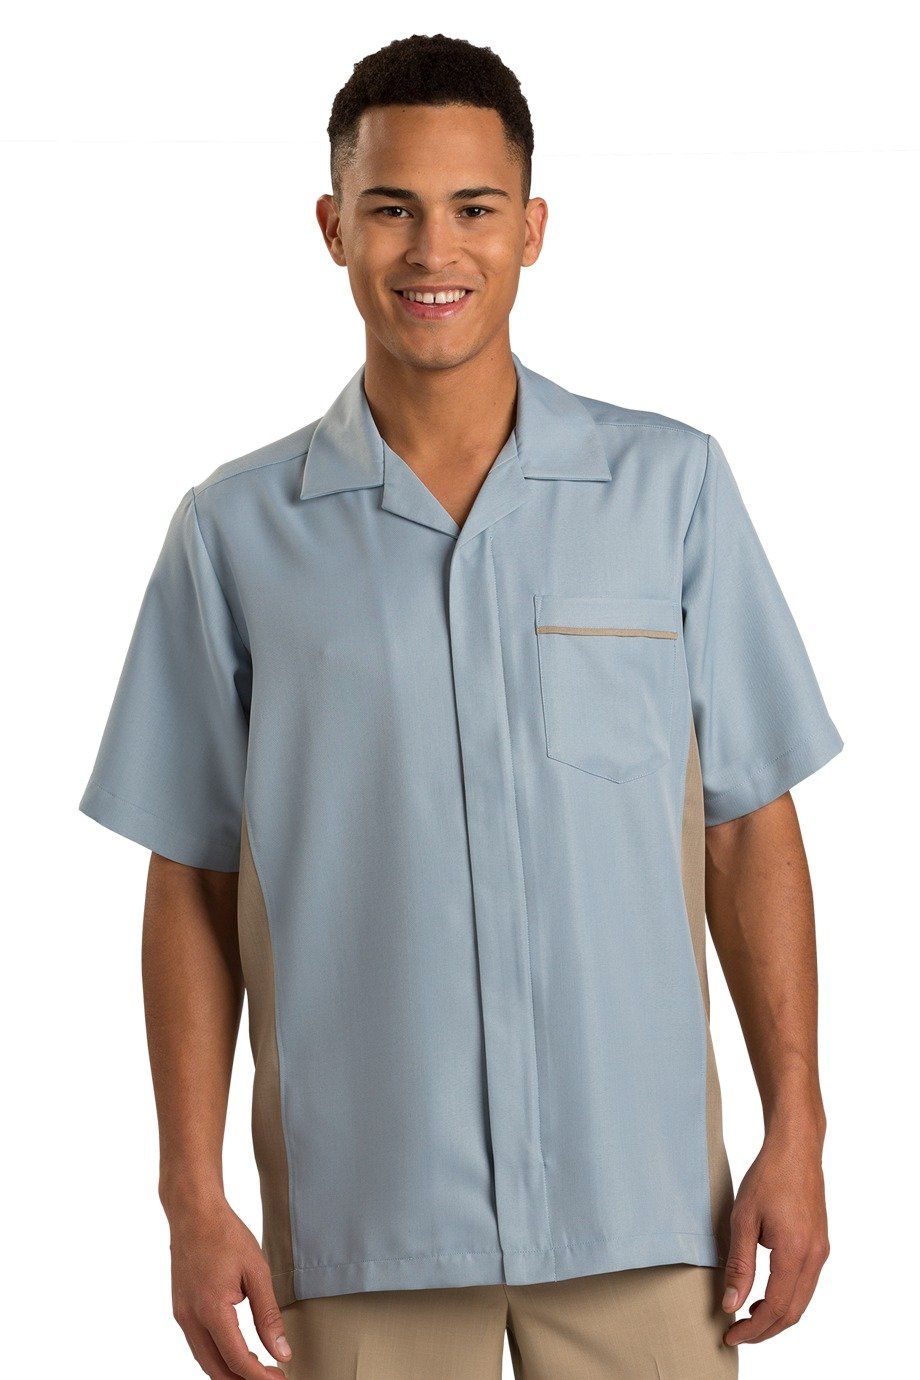 Glacier Blue Premier Men's Housekeeping Service Shirt